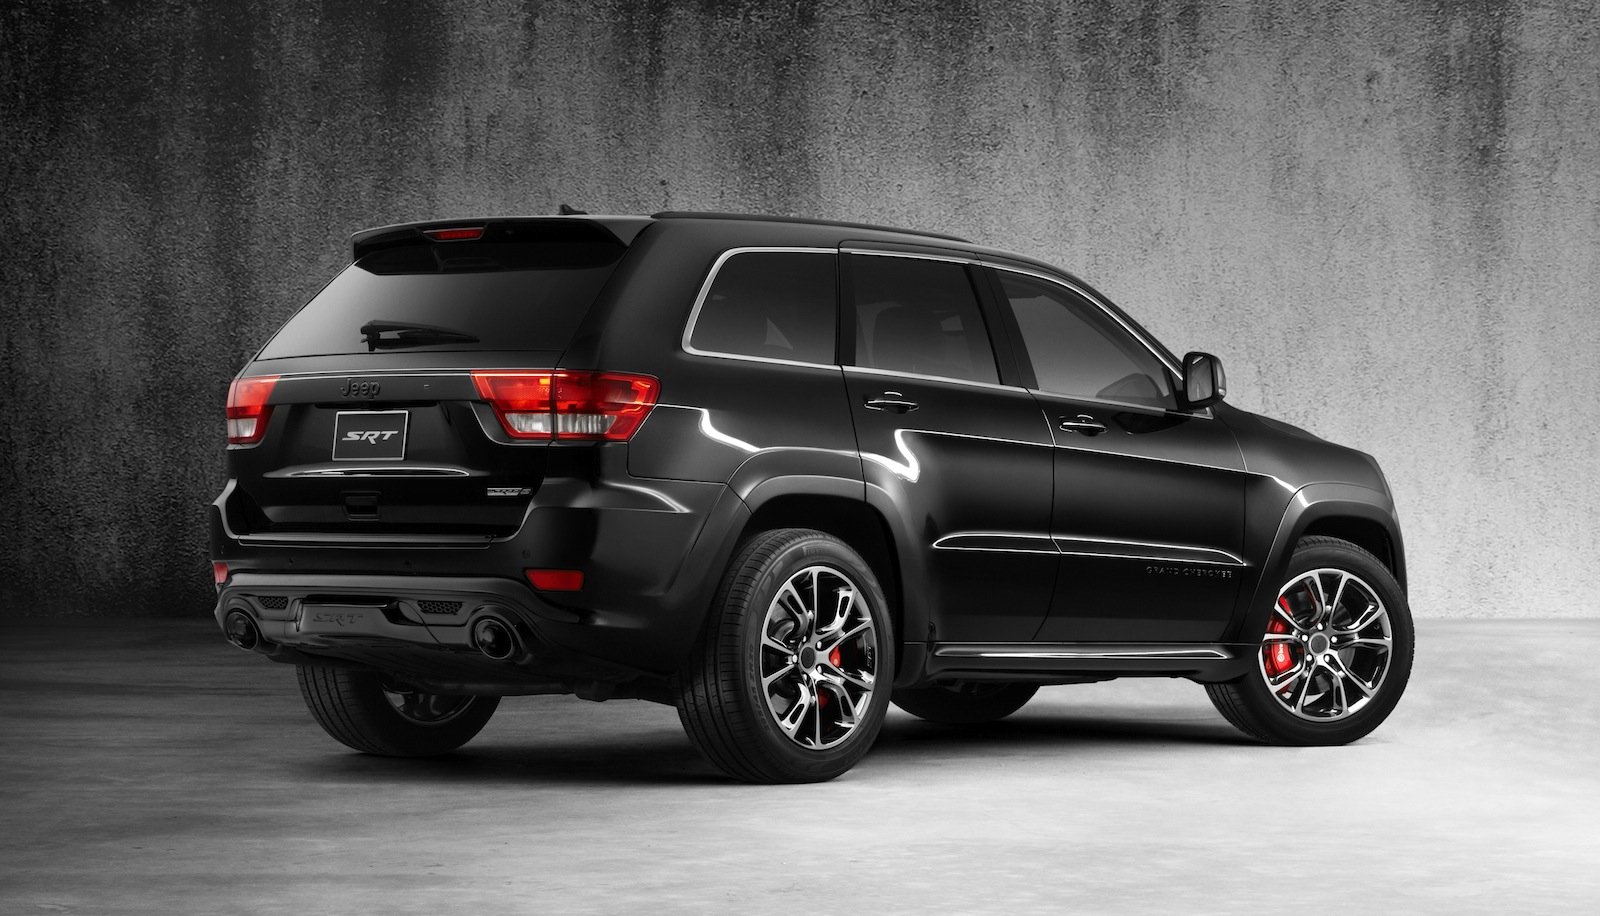 2016 Jeep Grand Cherokee Srt #13